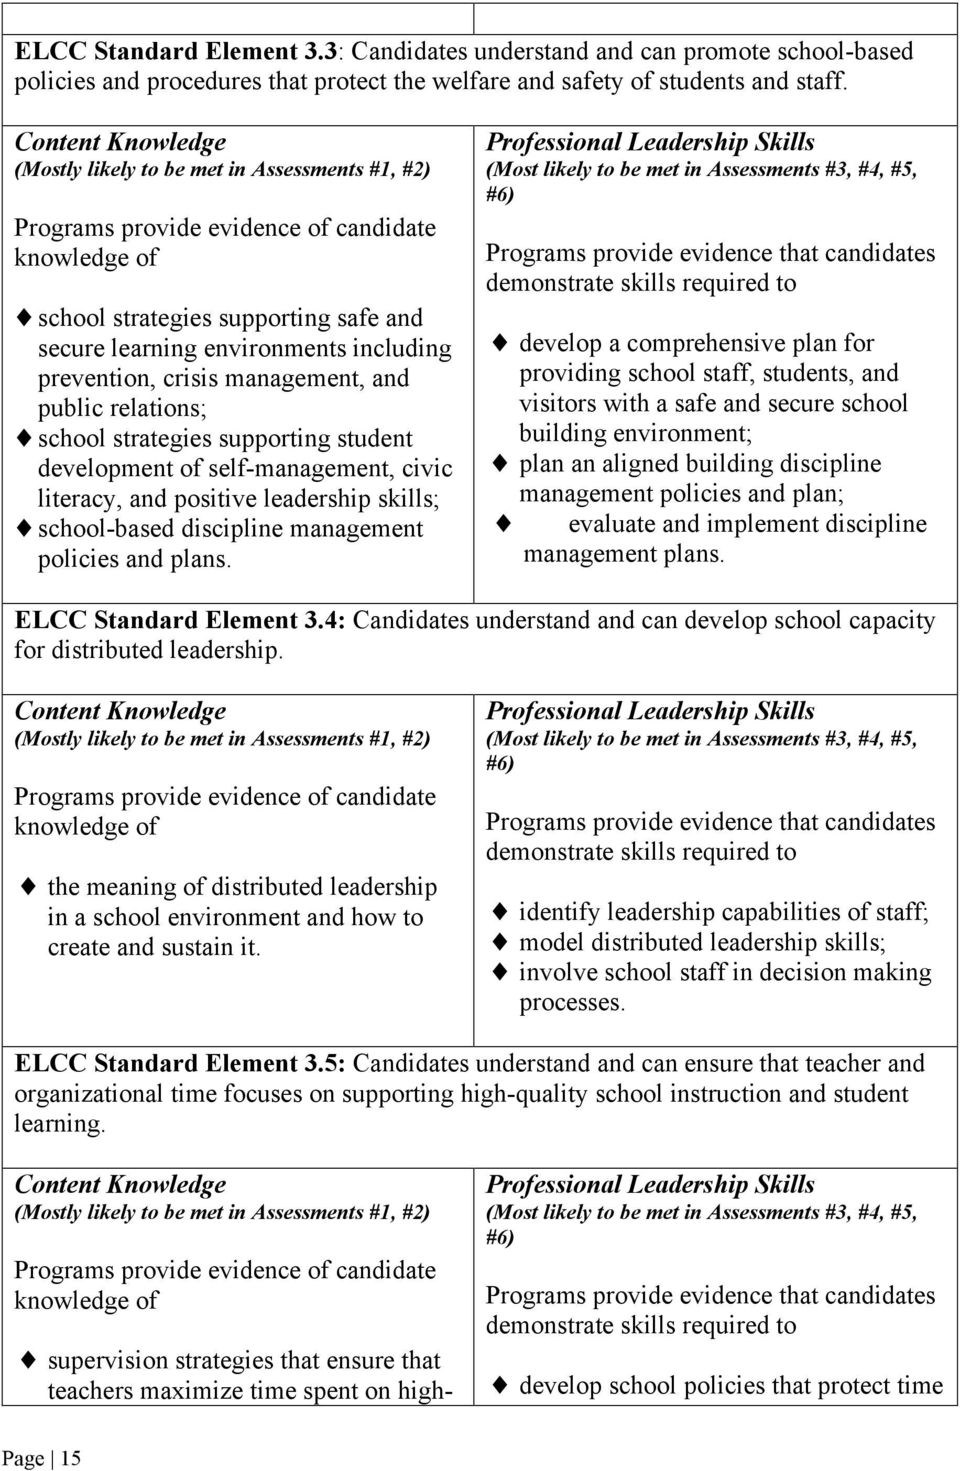 prevention, crisis management, and public relations; school strategies supporting student development of self-management, civic literacy, and positive leadership skills; school-based discipline